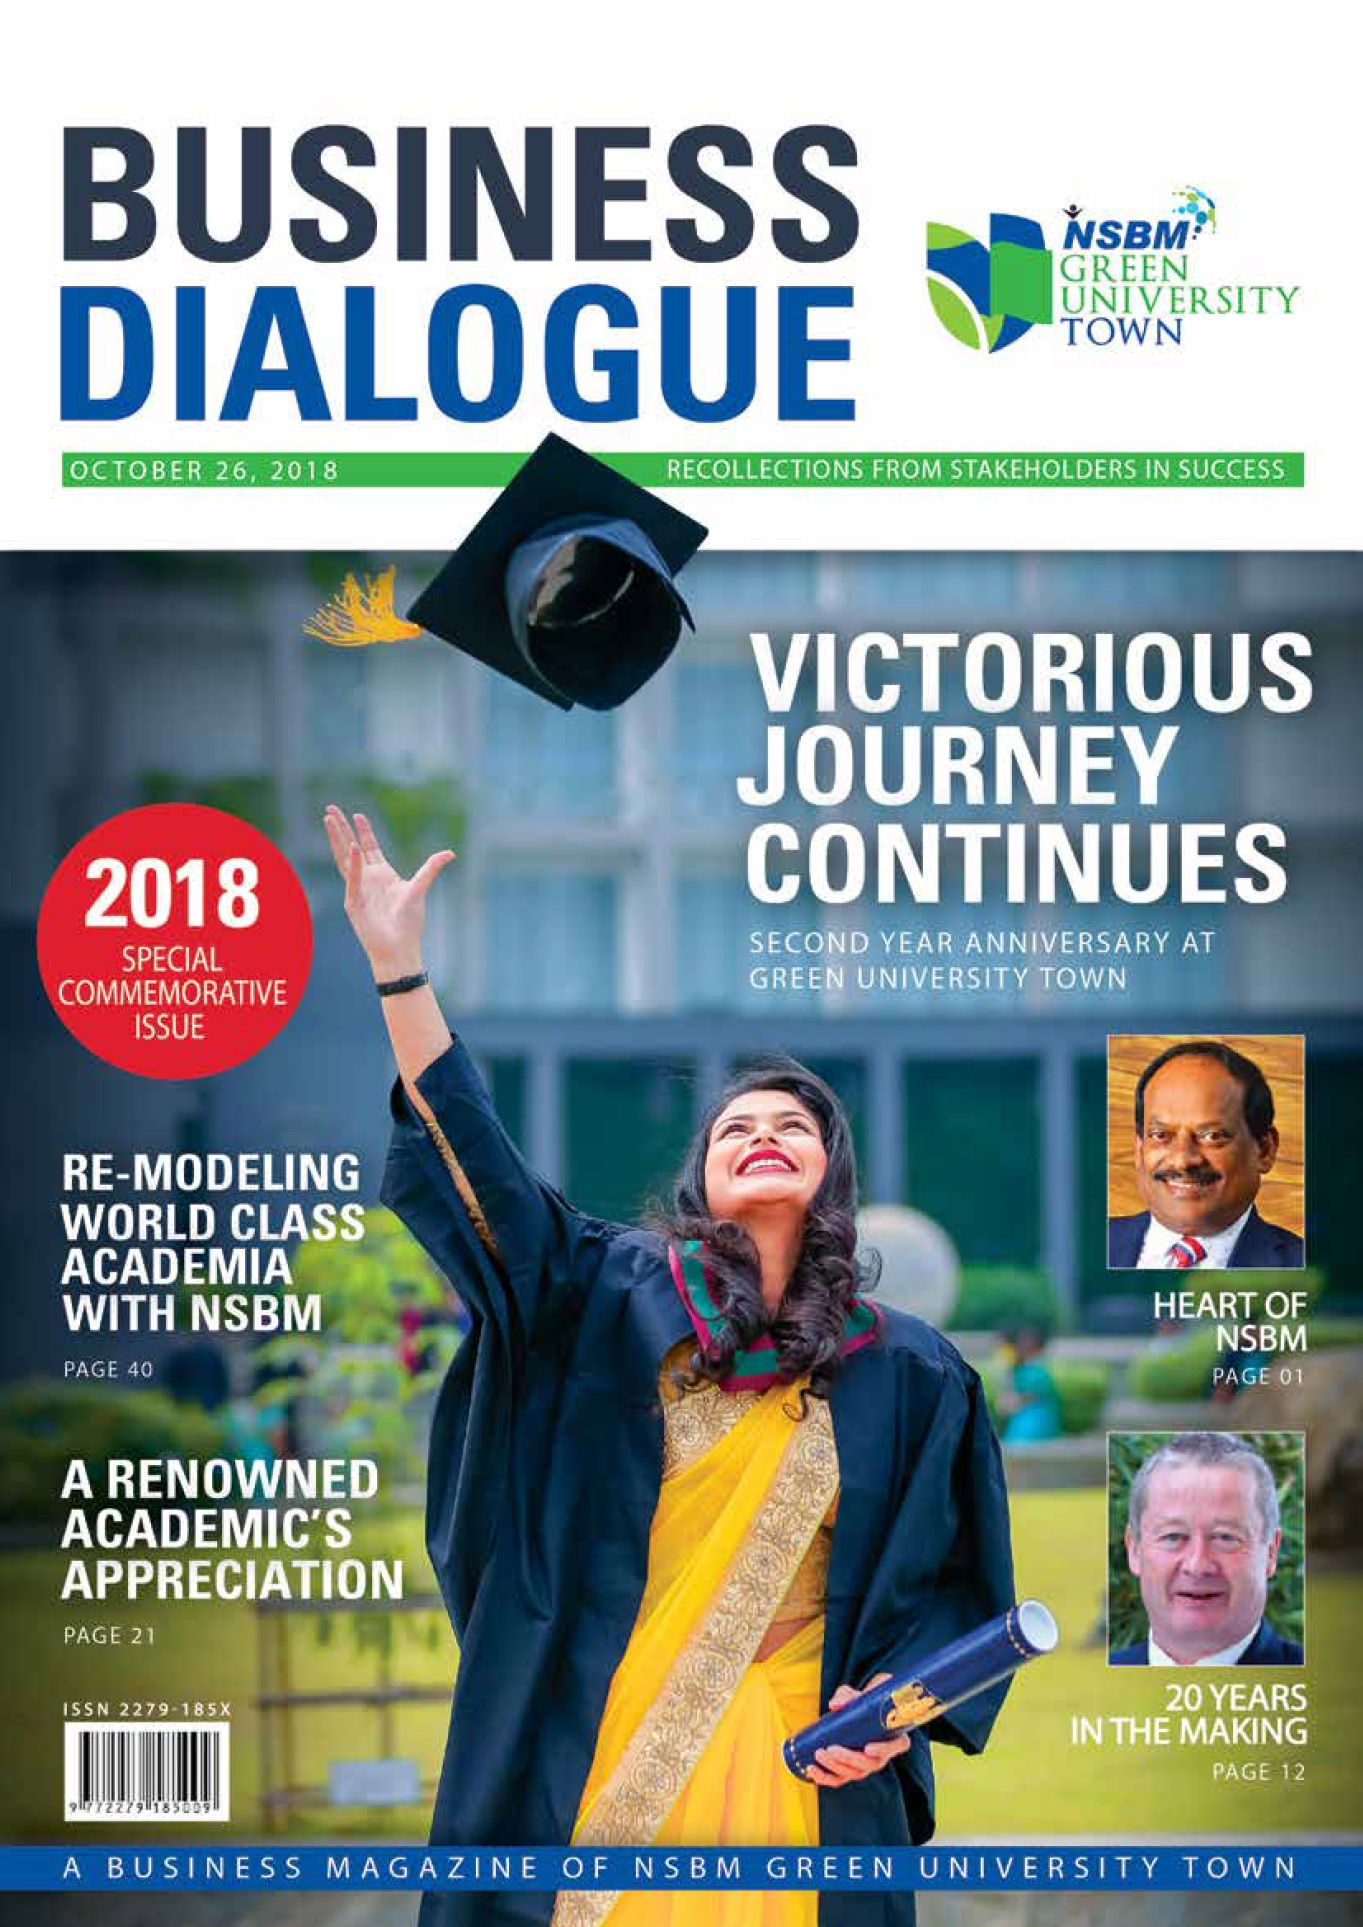 Business-Dialog-2018-Special-Commemorative-Issue.